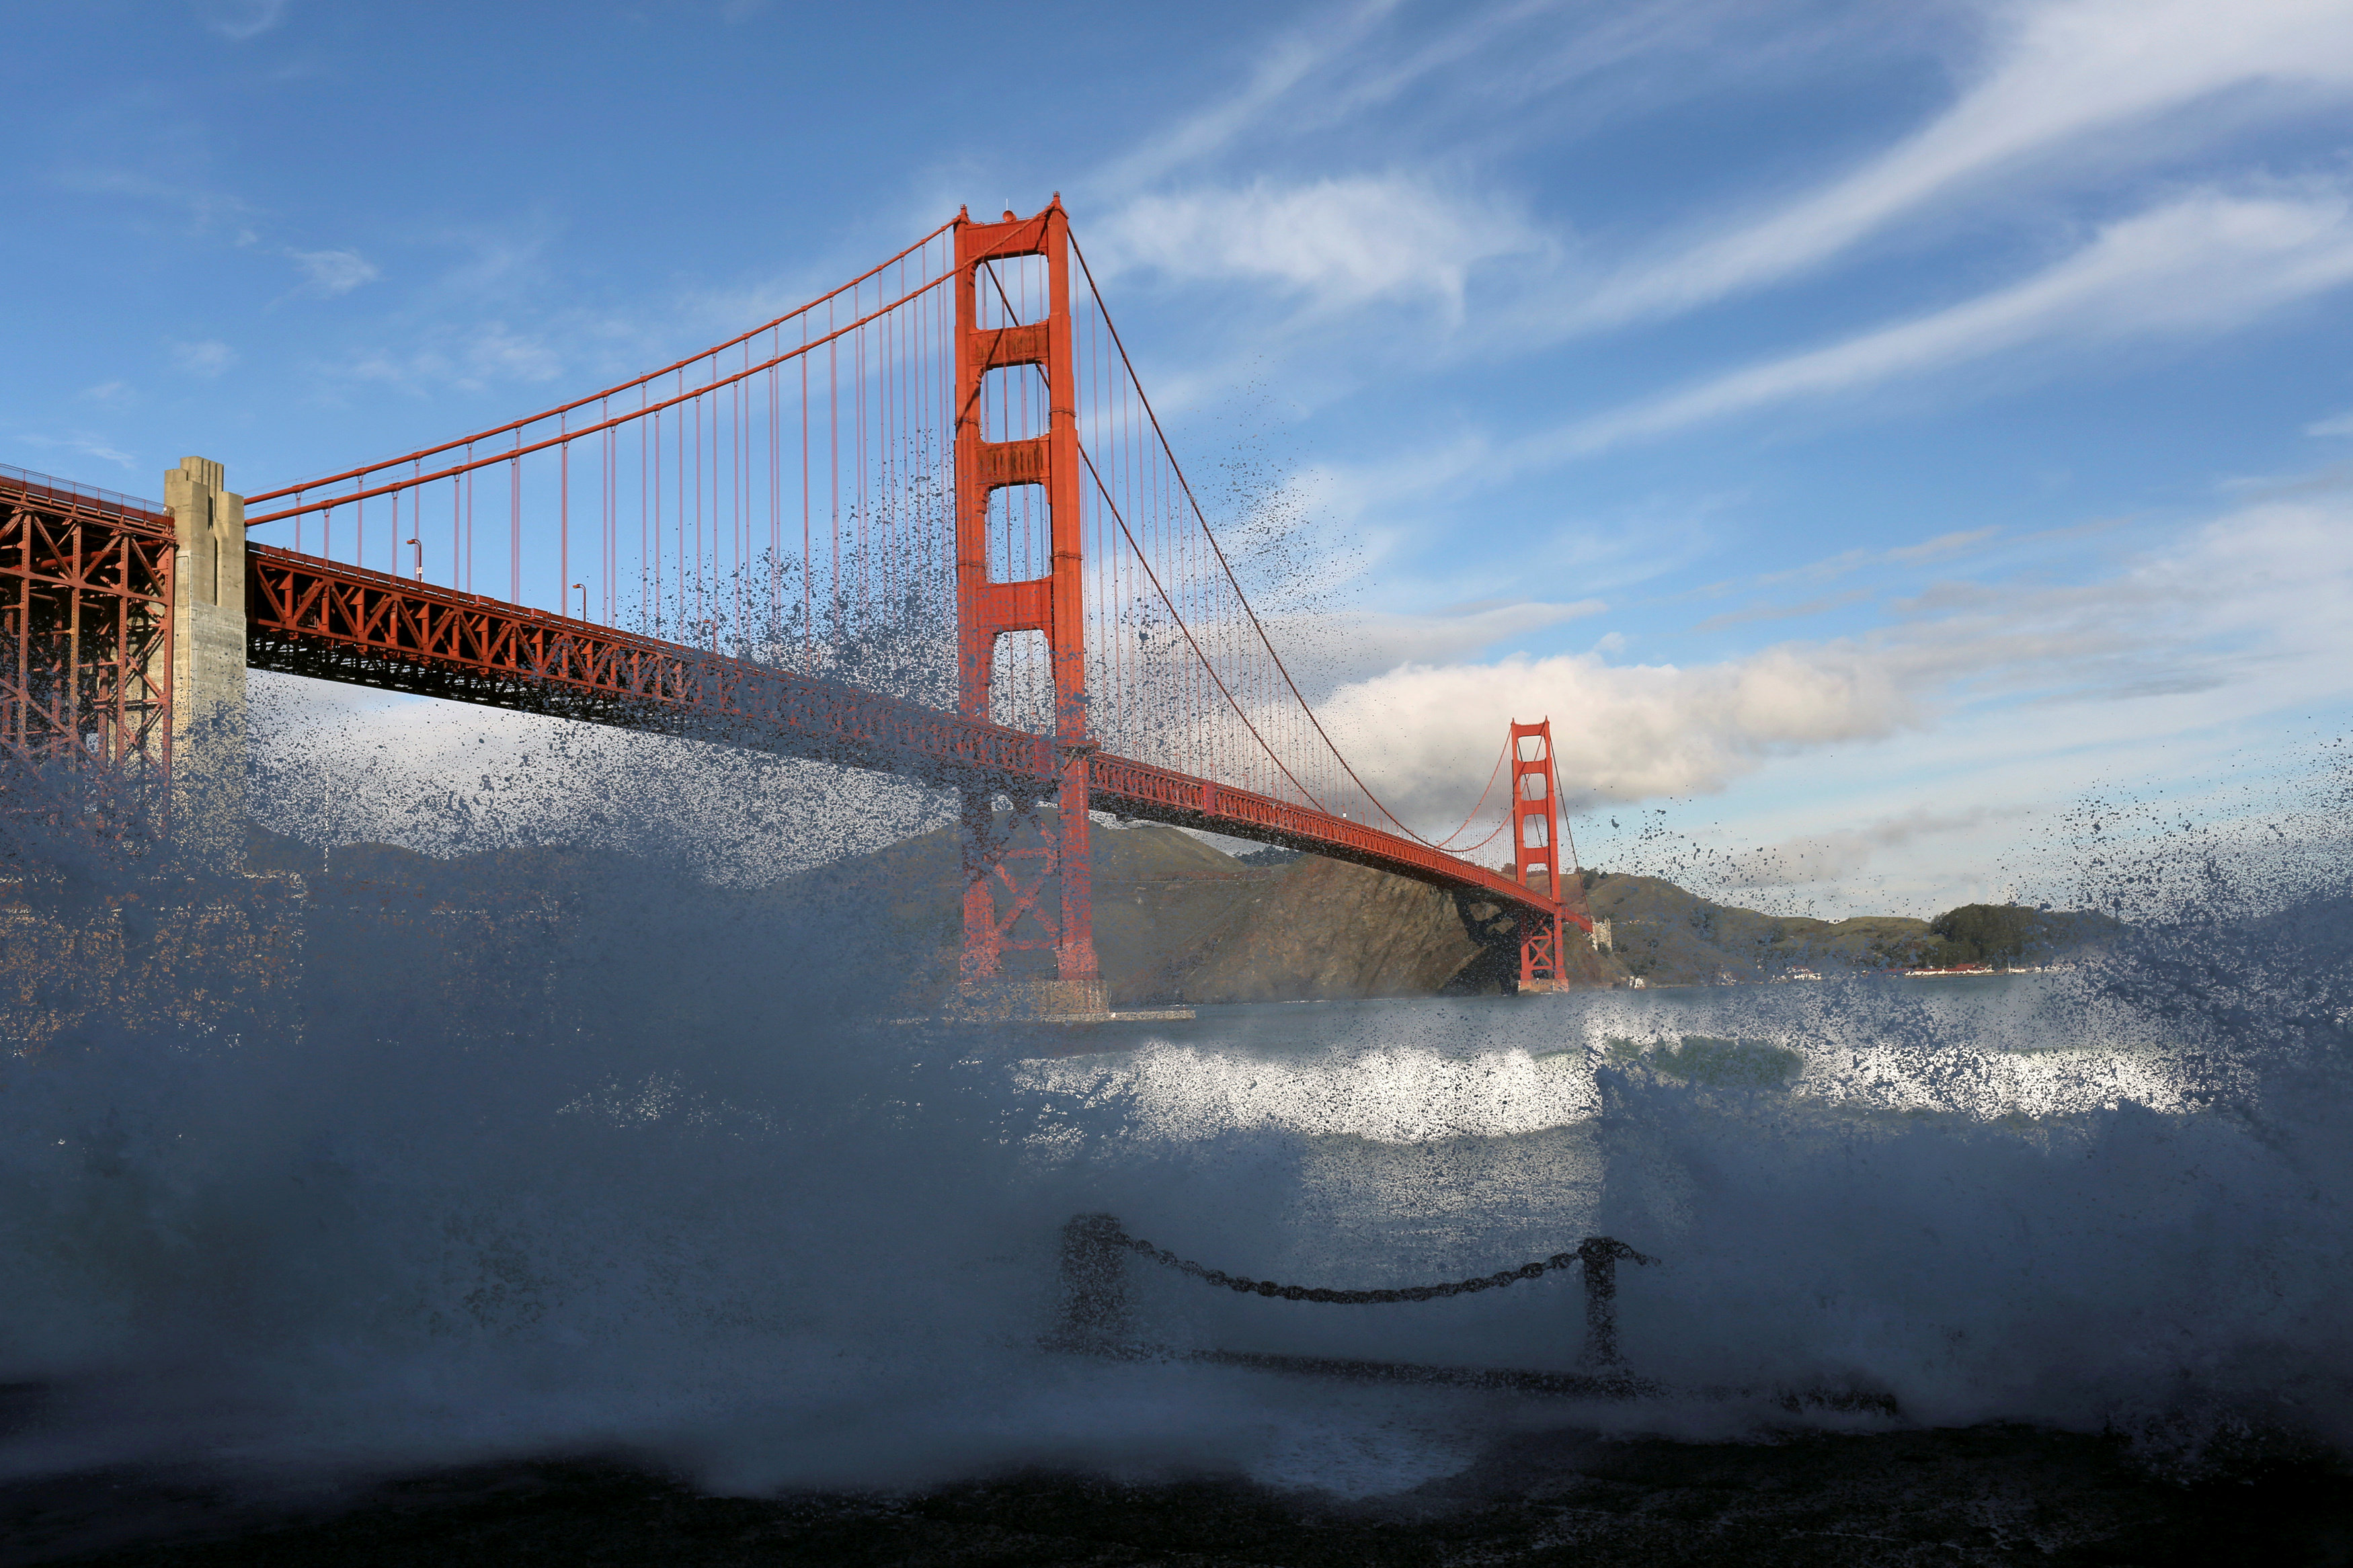 FILE PHOTO: Waves crash against a sea wall in San Francisco Bay beneath the Golden Gate Bridge in San Francisco, California, December 16, 2014. REUTERS/Robert Galbraith//File Photo